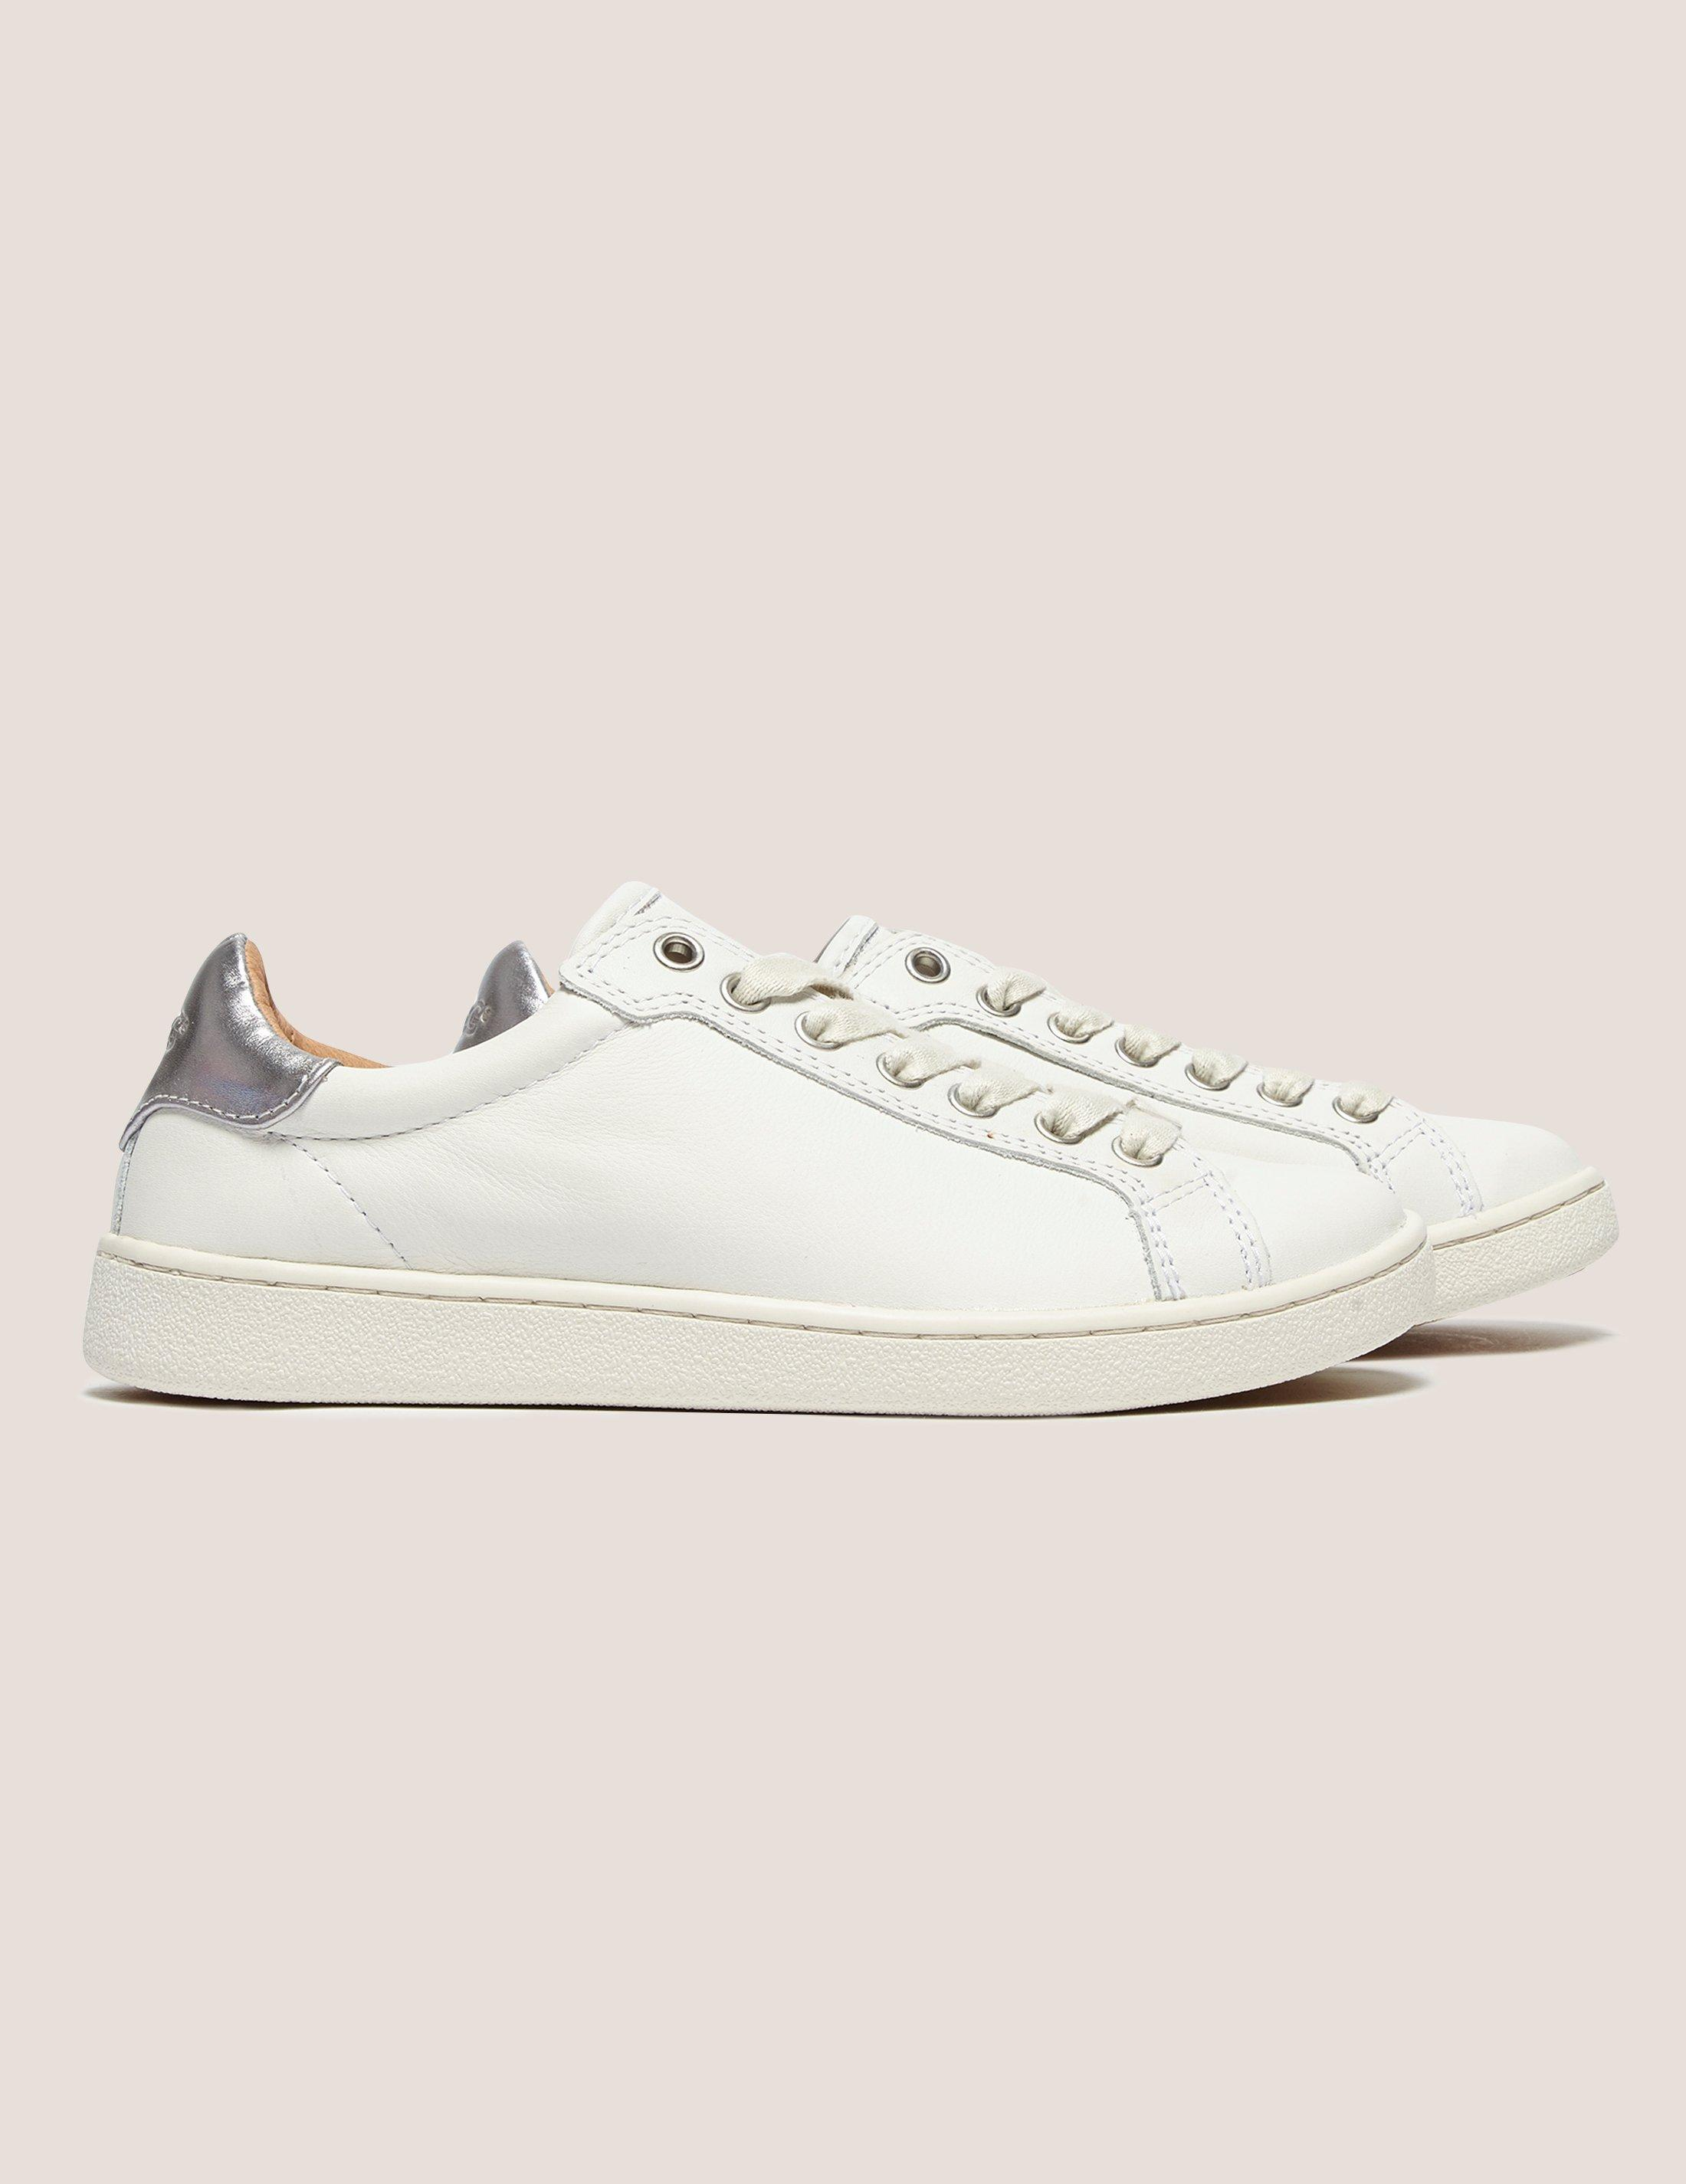 929189a7fb5 Lyst - UGG Womens Milo Trainer White in White